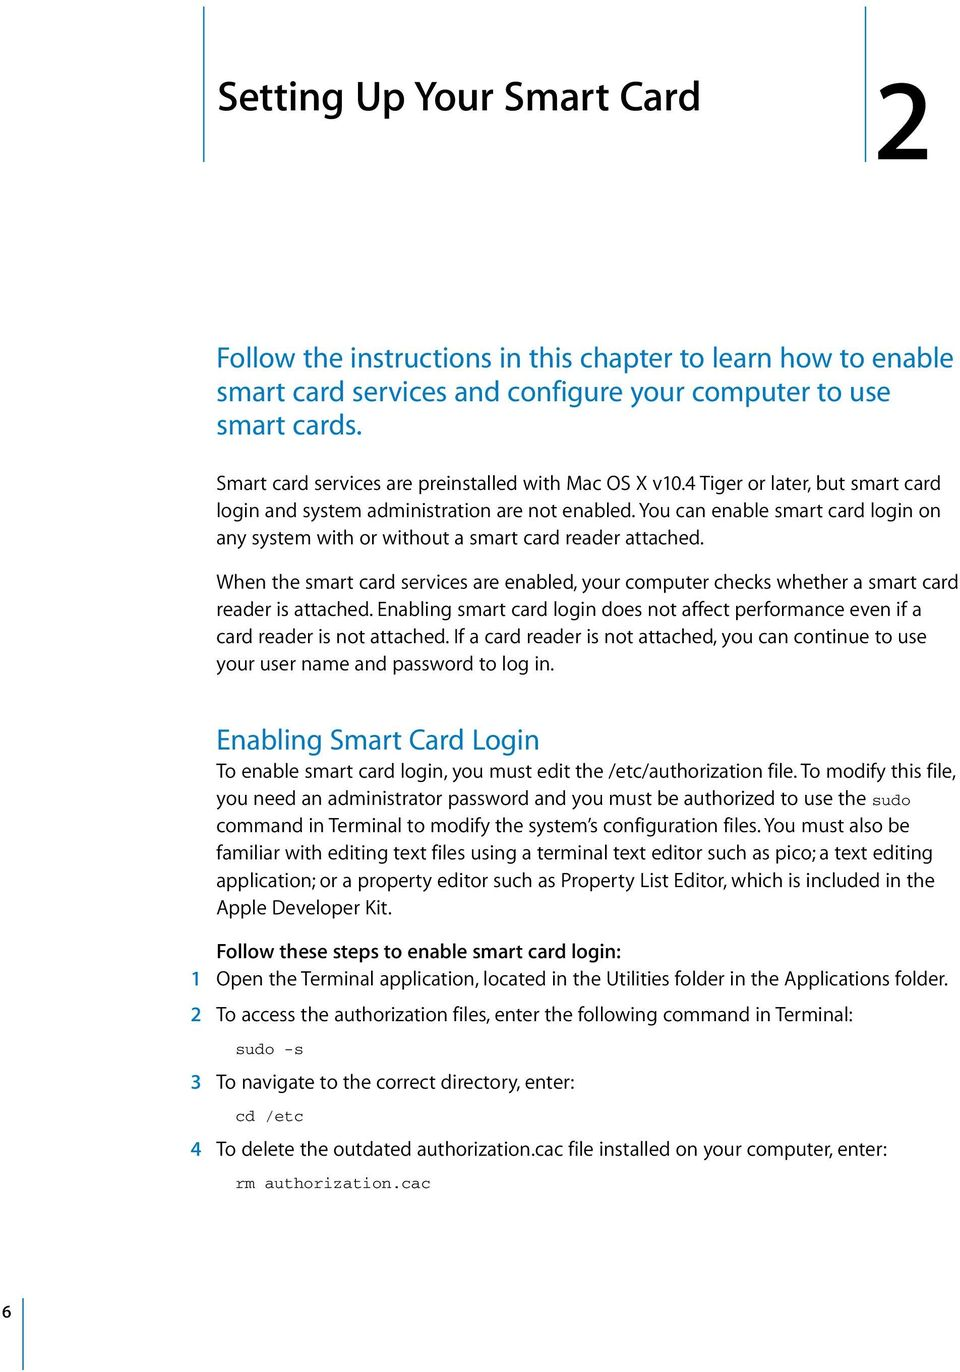 You can enable smart card login on any system with or without a smart card reader attached. When the smart card services are enabled, your computer checks whether a smart card reader is attached.